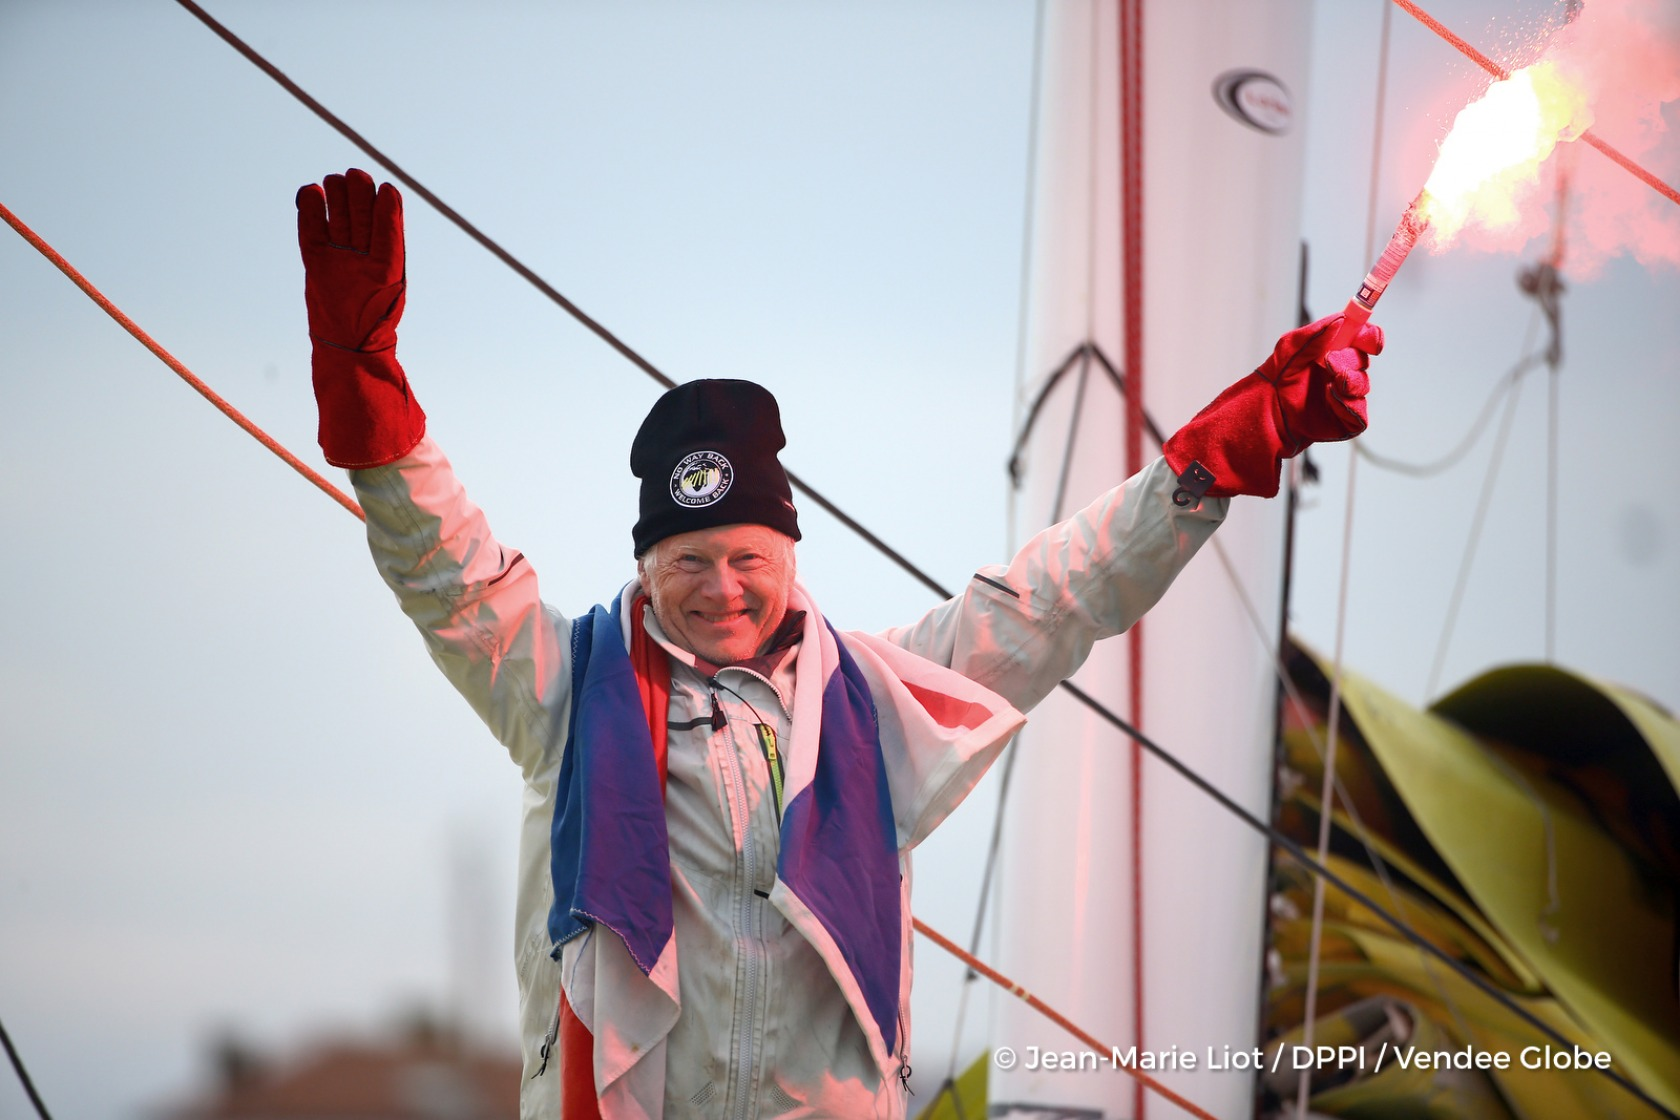 Celebration in the channel during Finish arrival of Pieter Heerema (NL), skipper No Way Back,17th of the sailing circumnavigation solo race Vendee Globe, in Les Sables d'Olonne, France, on March 2nd, 2017 - Photo Jean-Marie Liot / DPPI / Vendee GlobeArrivée de Pieter Heerema (NL), skipper No Way Back, 17ème du Vendee Globe, aux Sables d'Olonne, France, le 2 Mars 2017 - Photo Jean-Marie Liot / DP